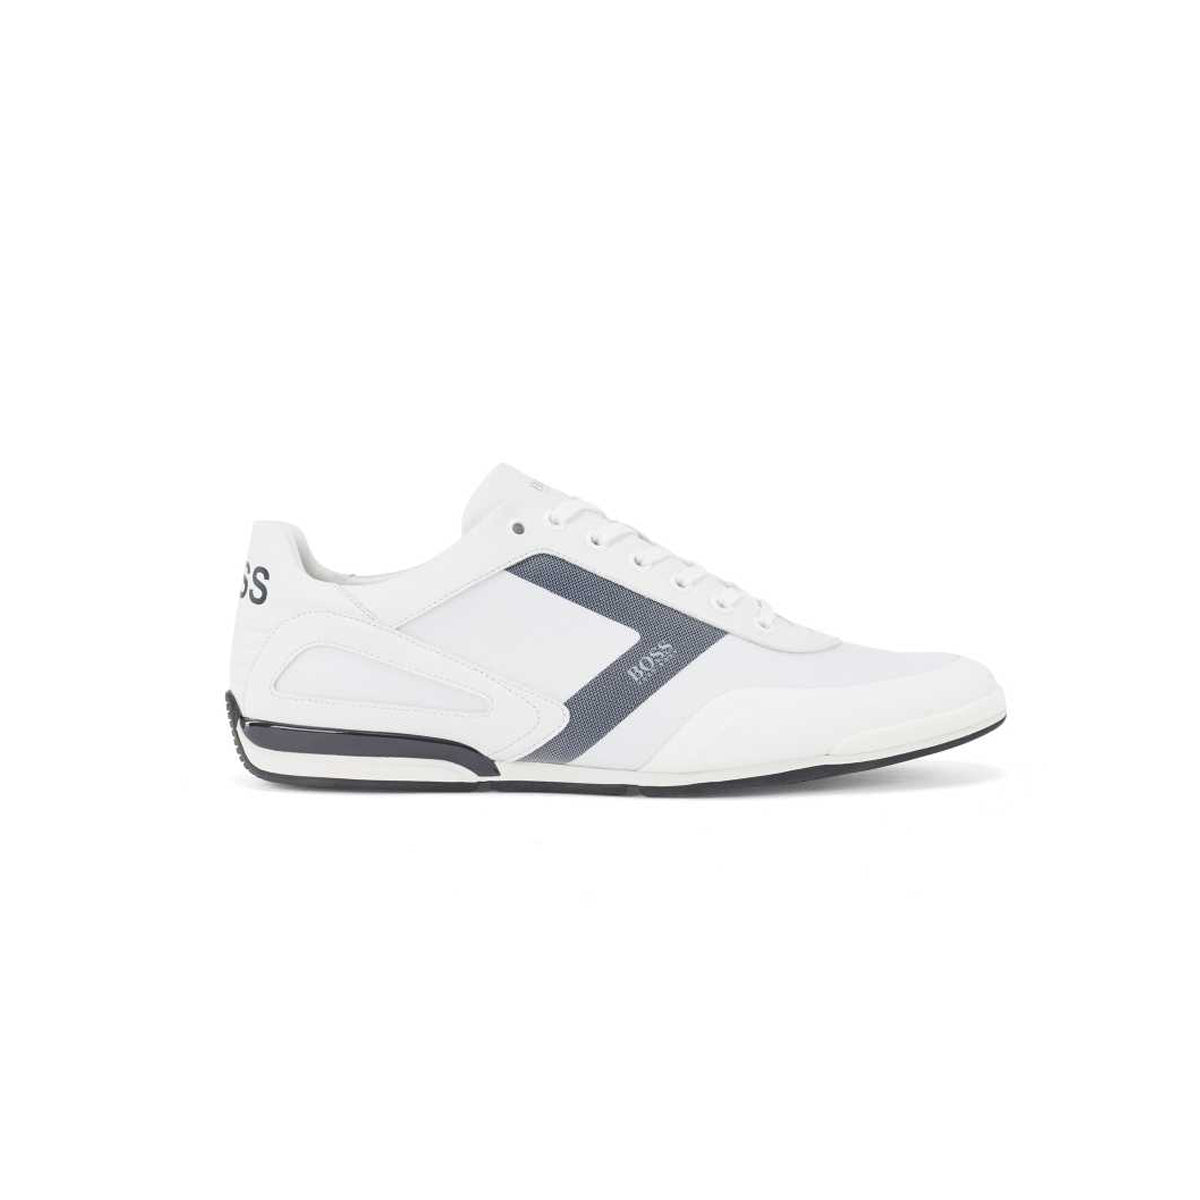 HUGO BOSS SATURN LOWP ACT5 MEN'S SHOES 50439553-100